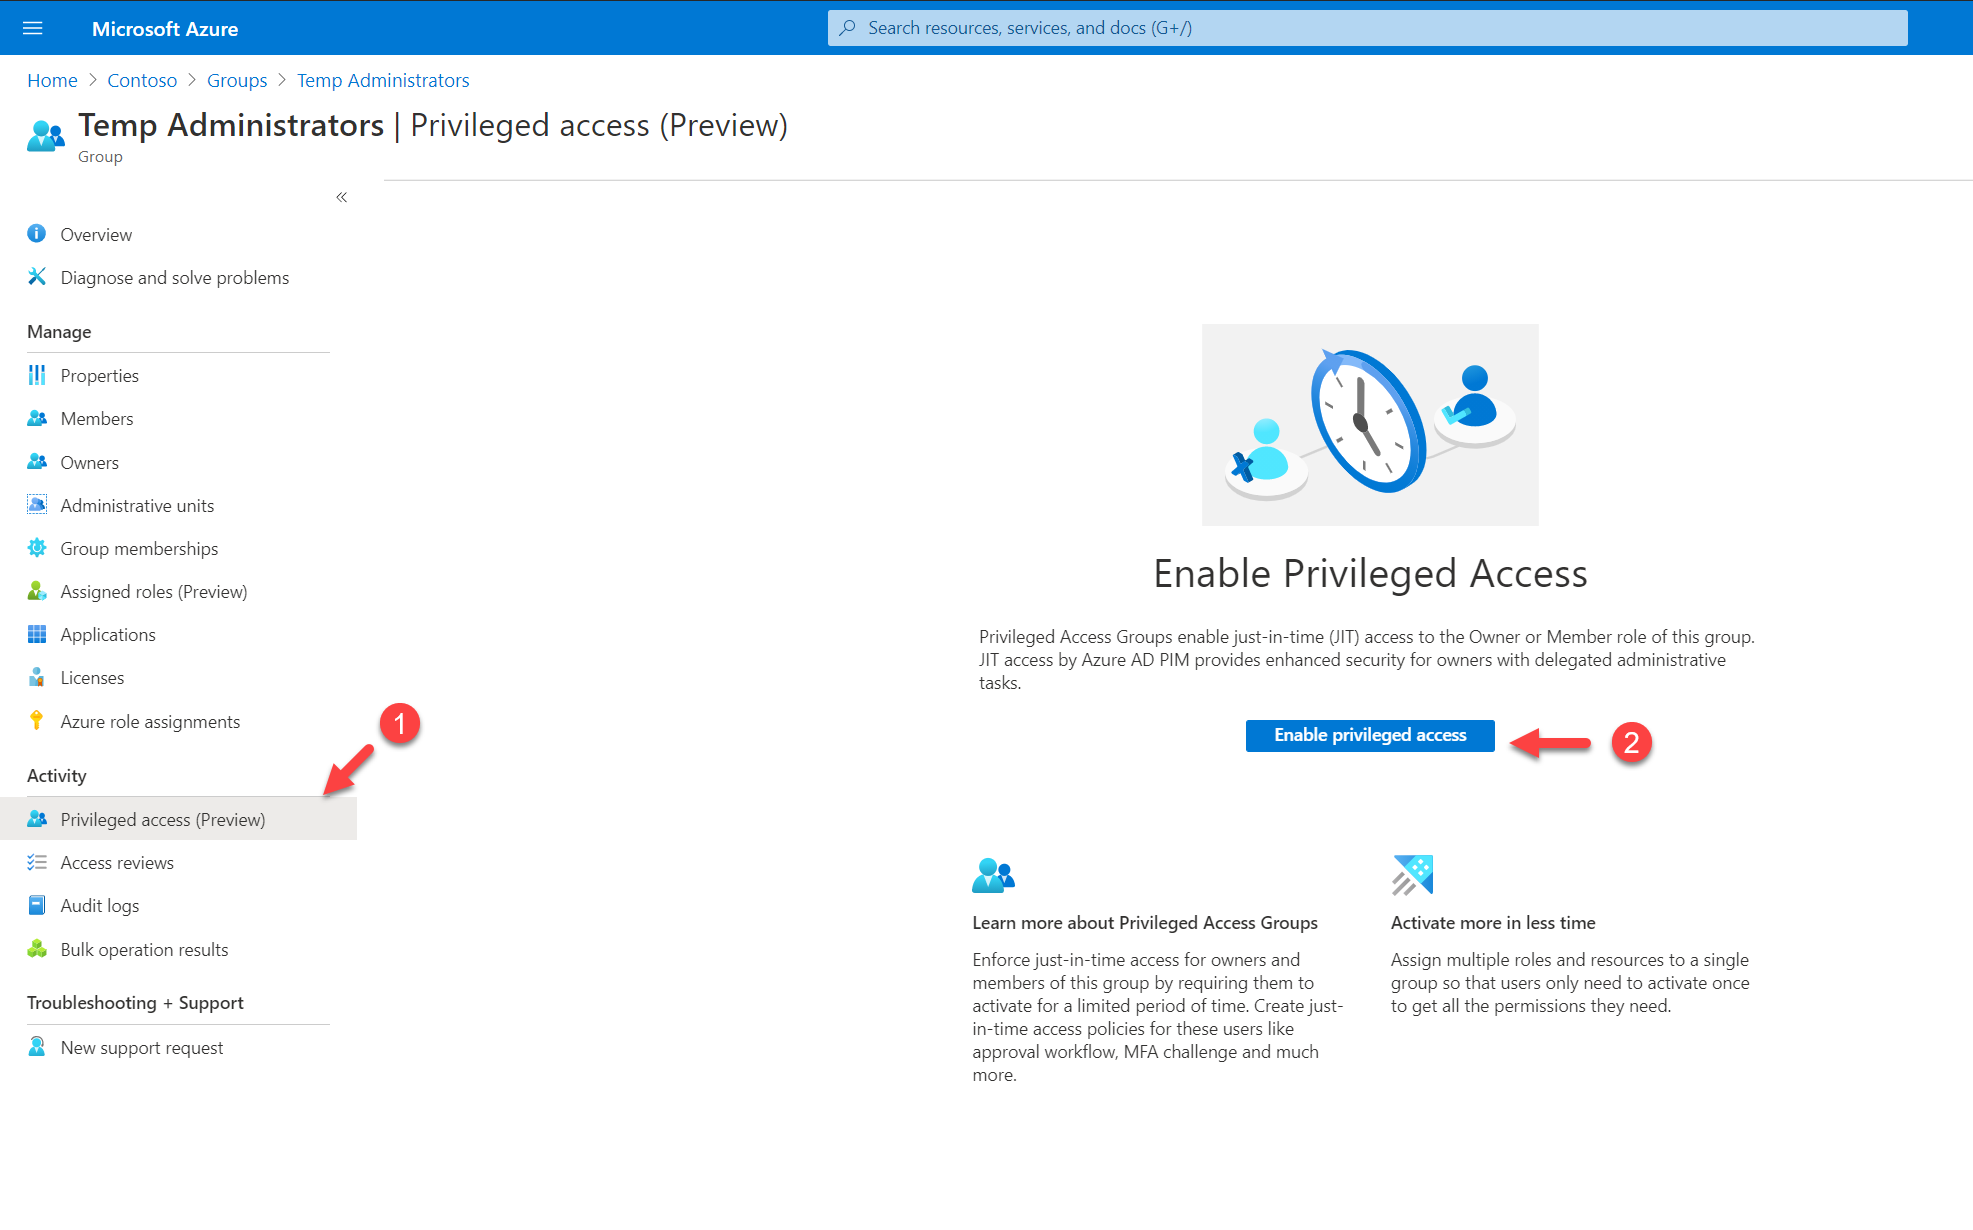 Enable privileged access for a group